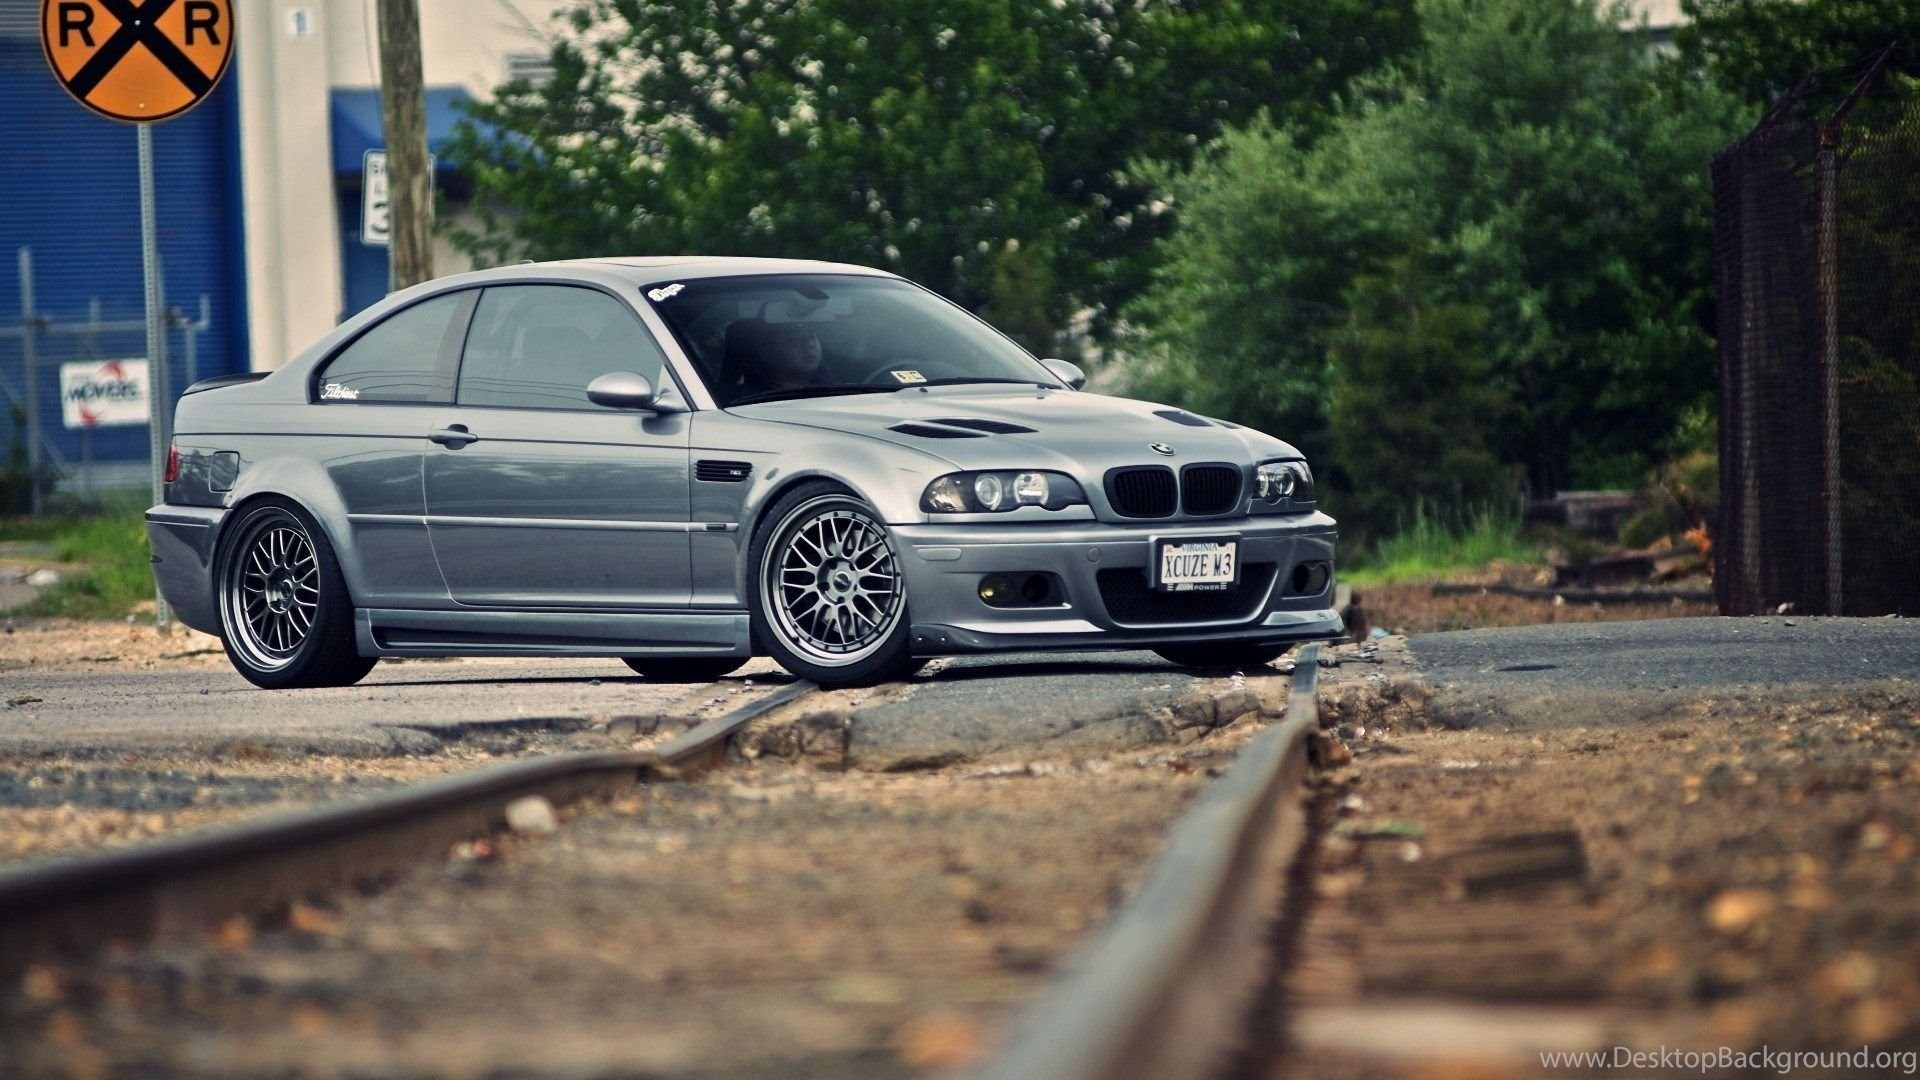 bmw m3 e46 wallpapers hd desktop background